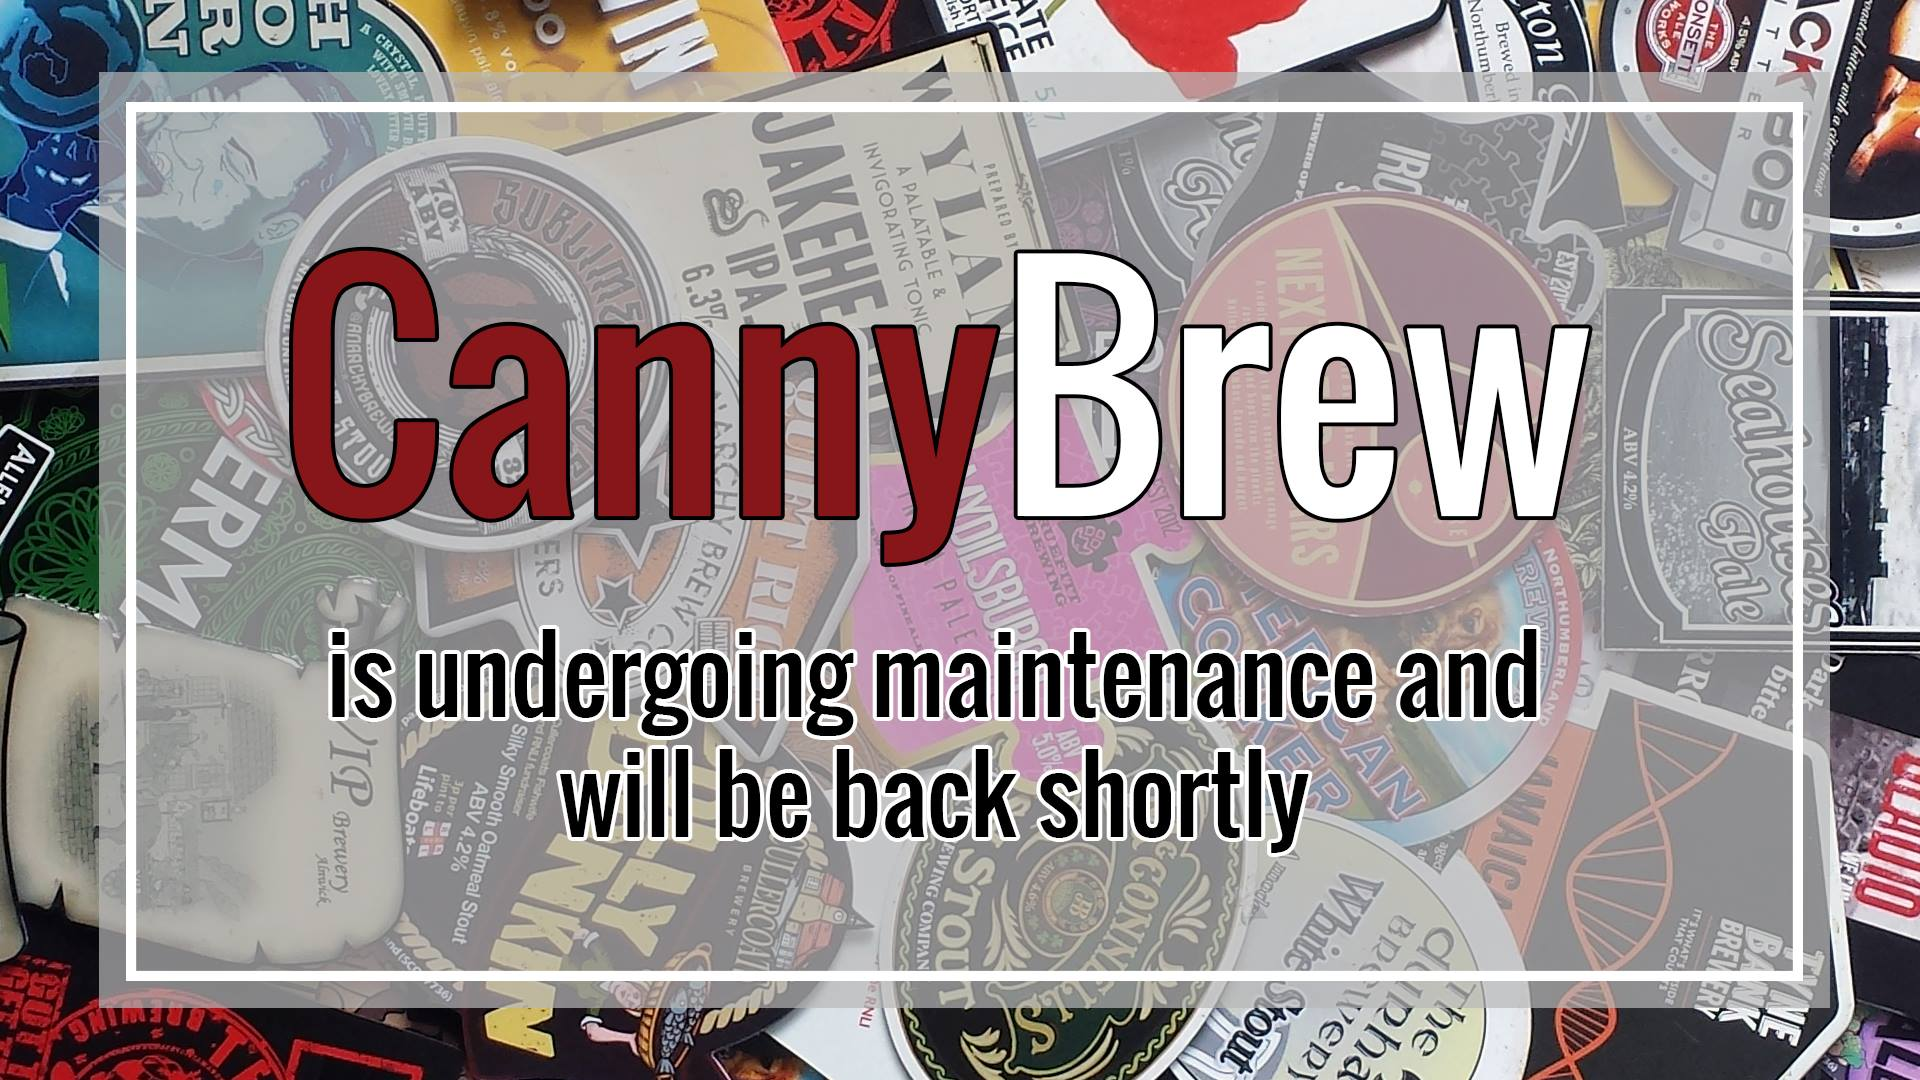 CannyBrew is undergoing maintenance and will be back shortly